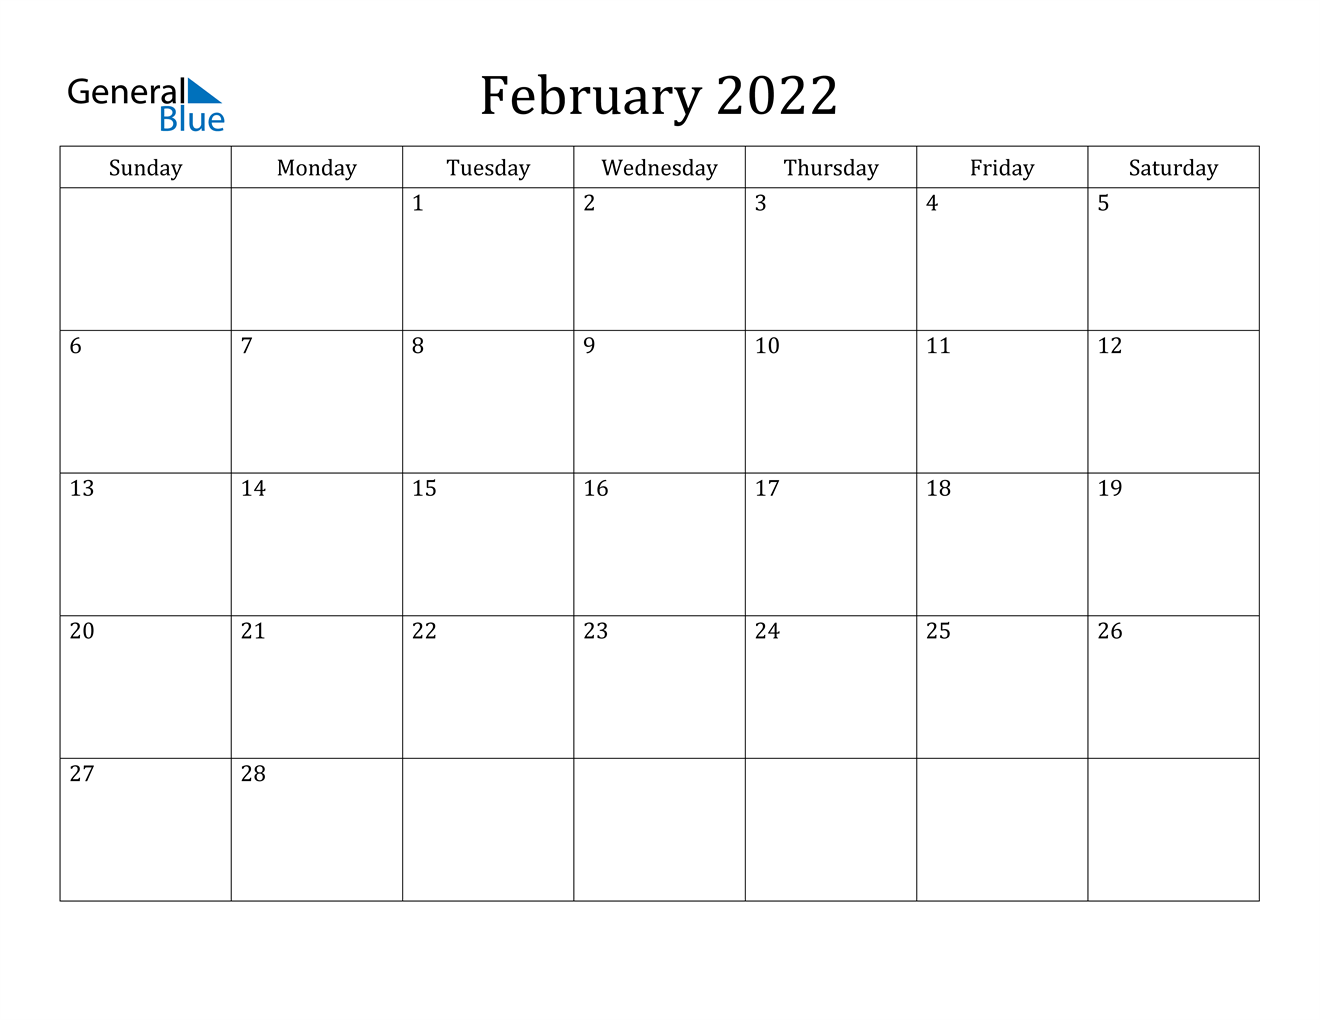 February 2022 Calendar - Pdf Word Excel In February March April May 2022 Calendar